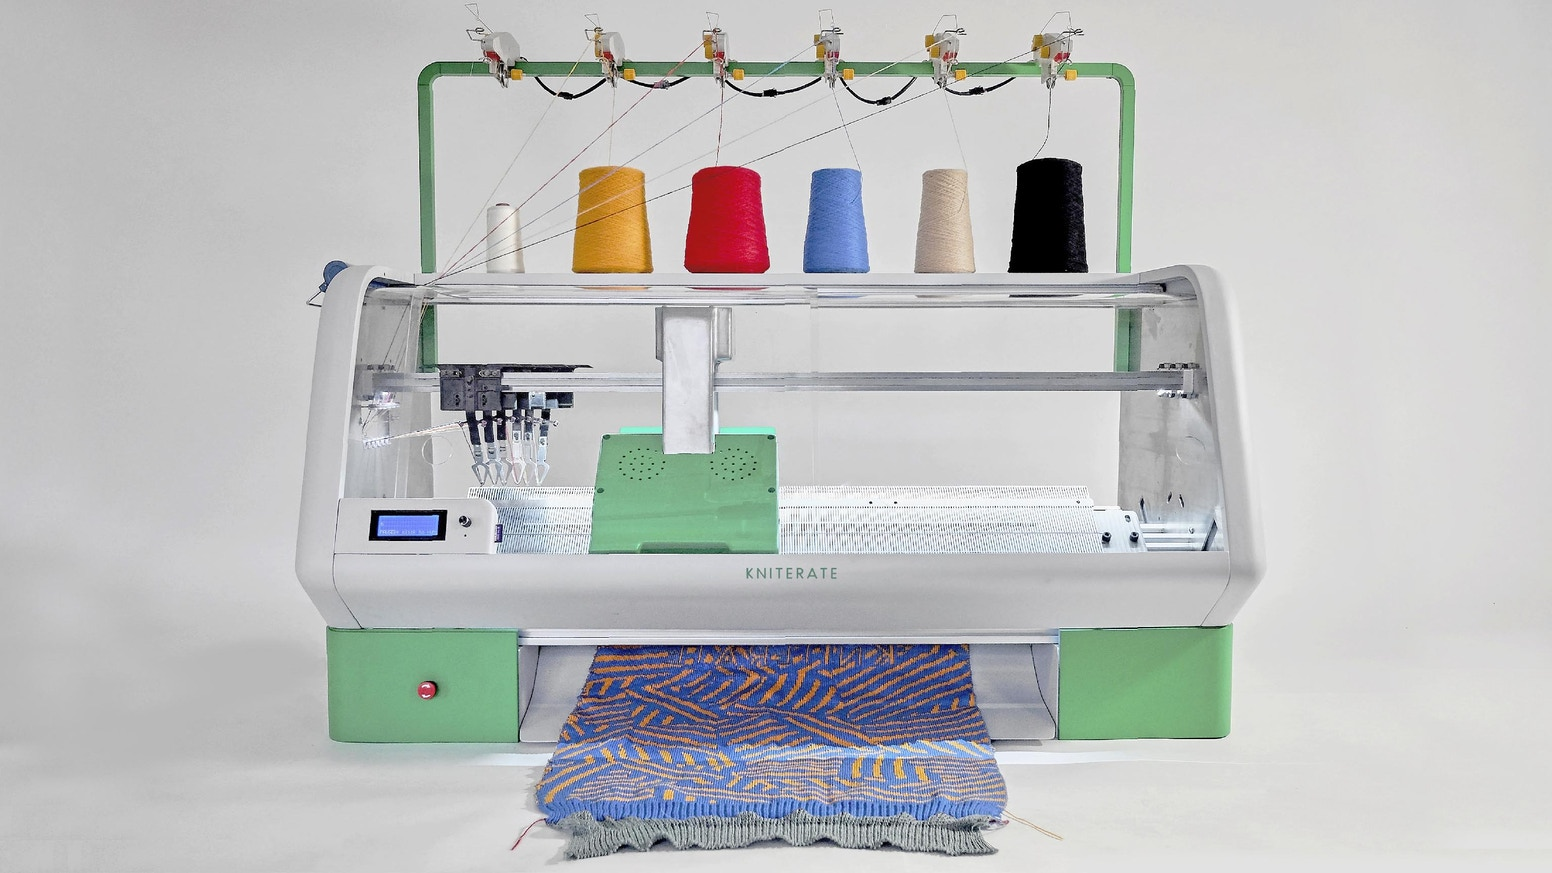 Create a design and press knit. A compact digital knitting machine to bring fashion fabrication back to your neighborhood.